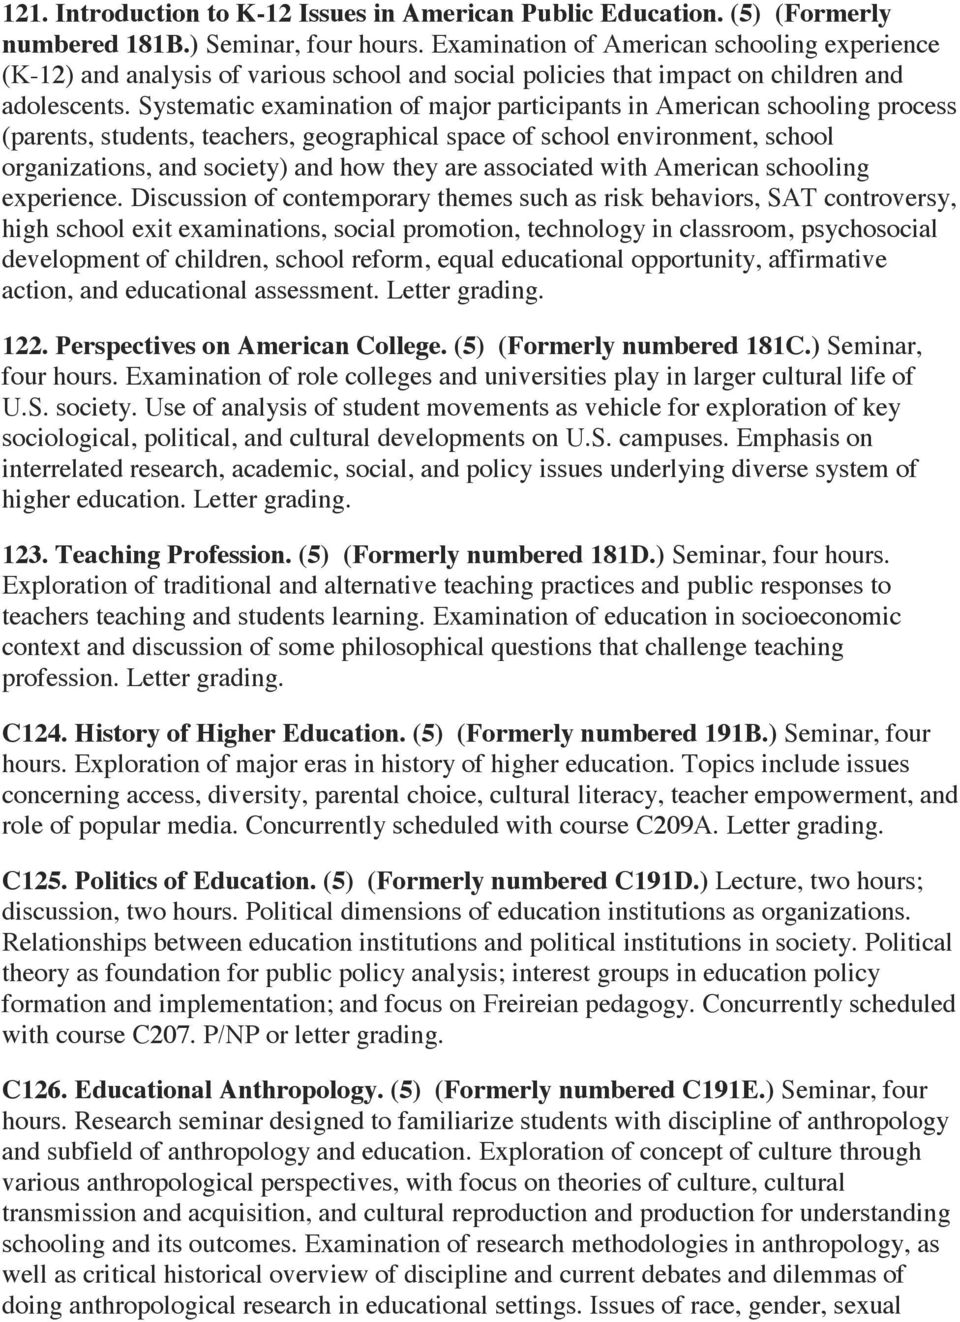 Systematic examination of major participants in American schooling process (parents, students, teachers, geographical space of school environment, school organizations, and society) and how they are